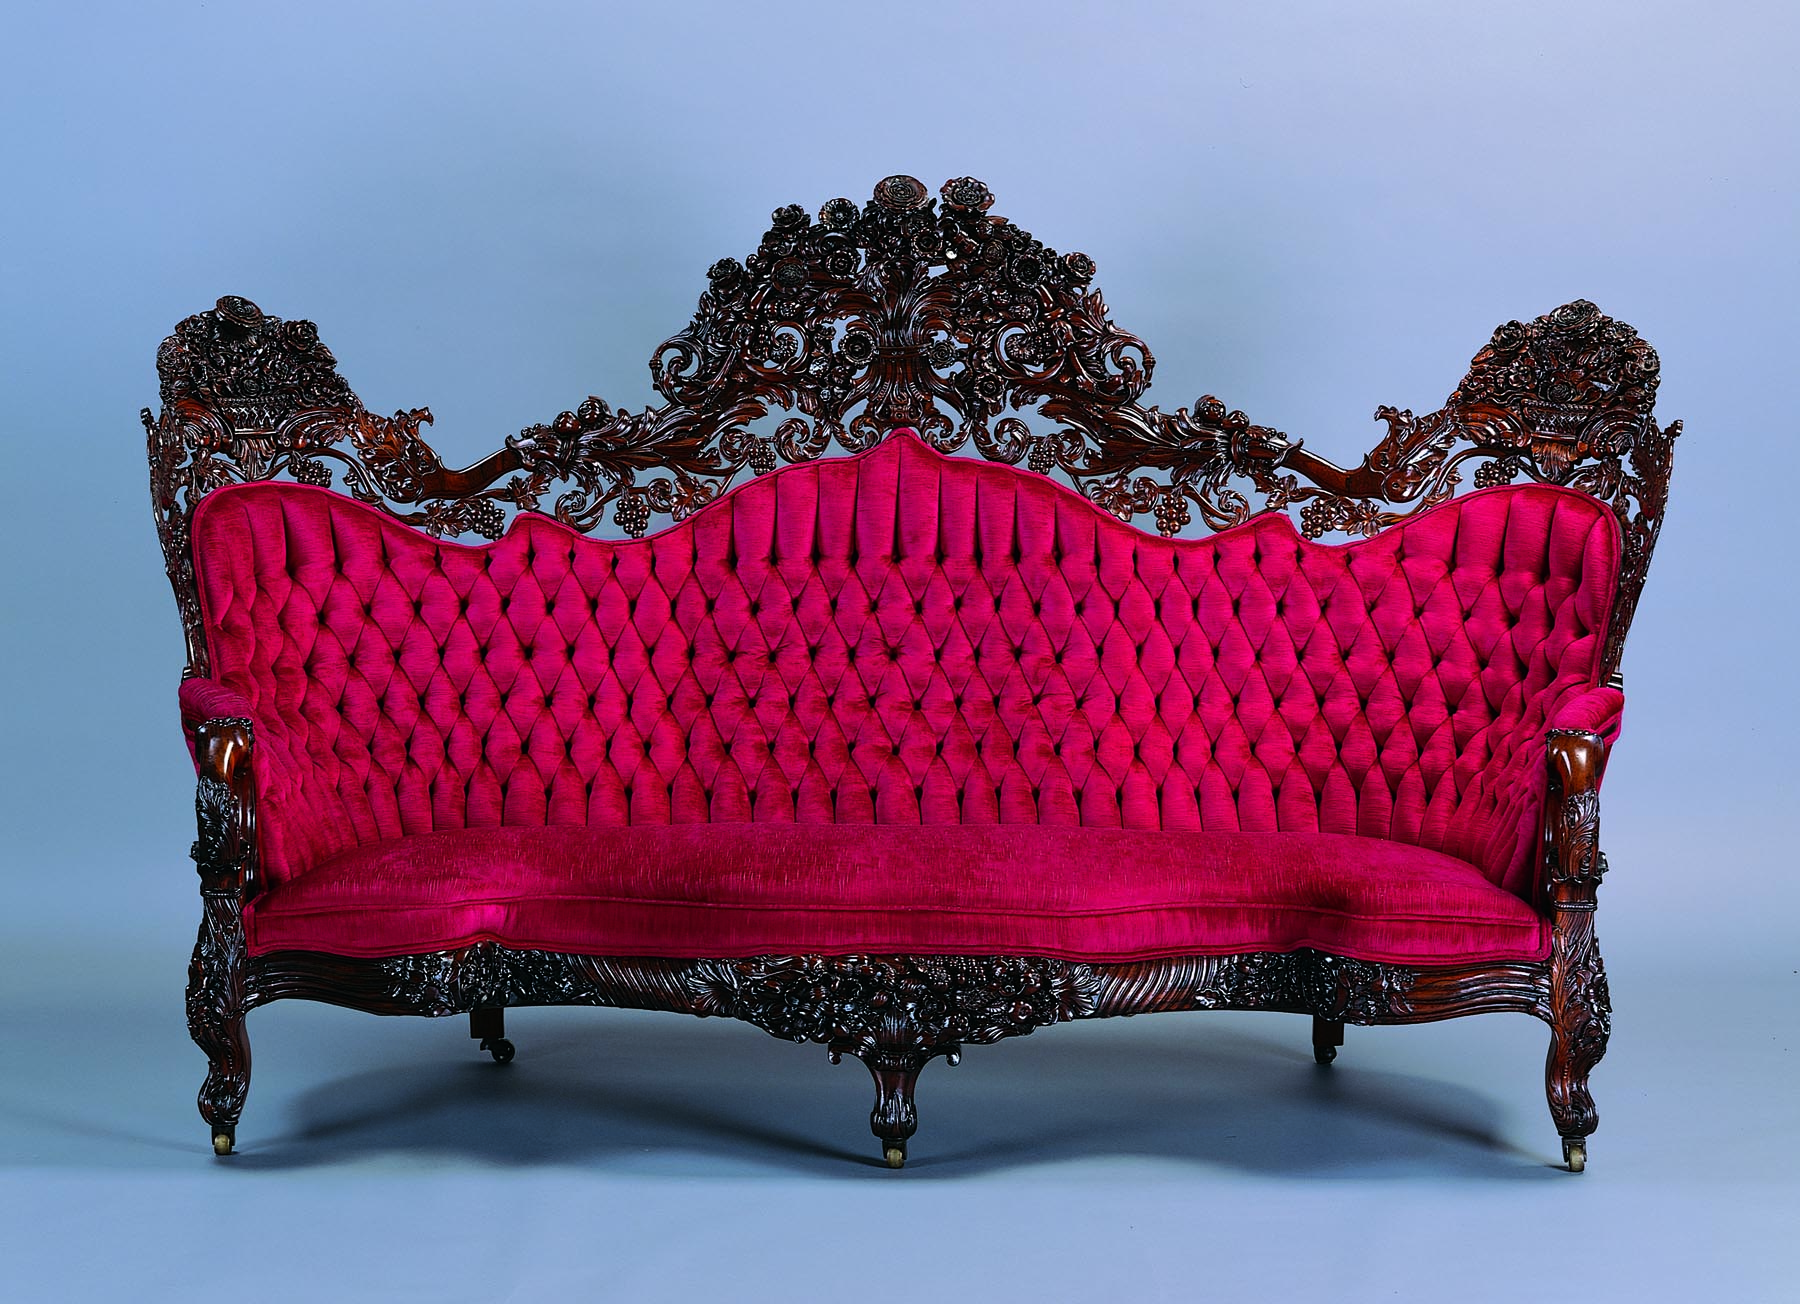 Rococo Revival Furniture John Henry Belter Furniture 2015 Home